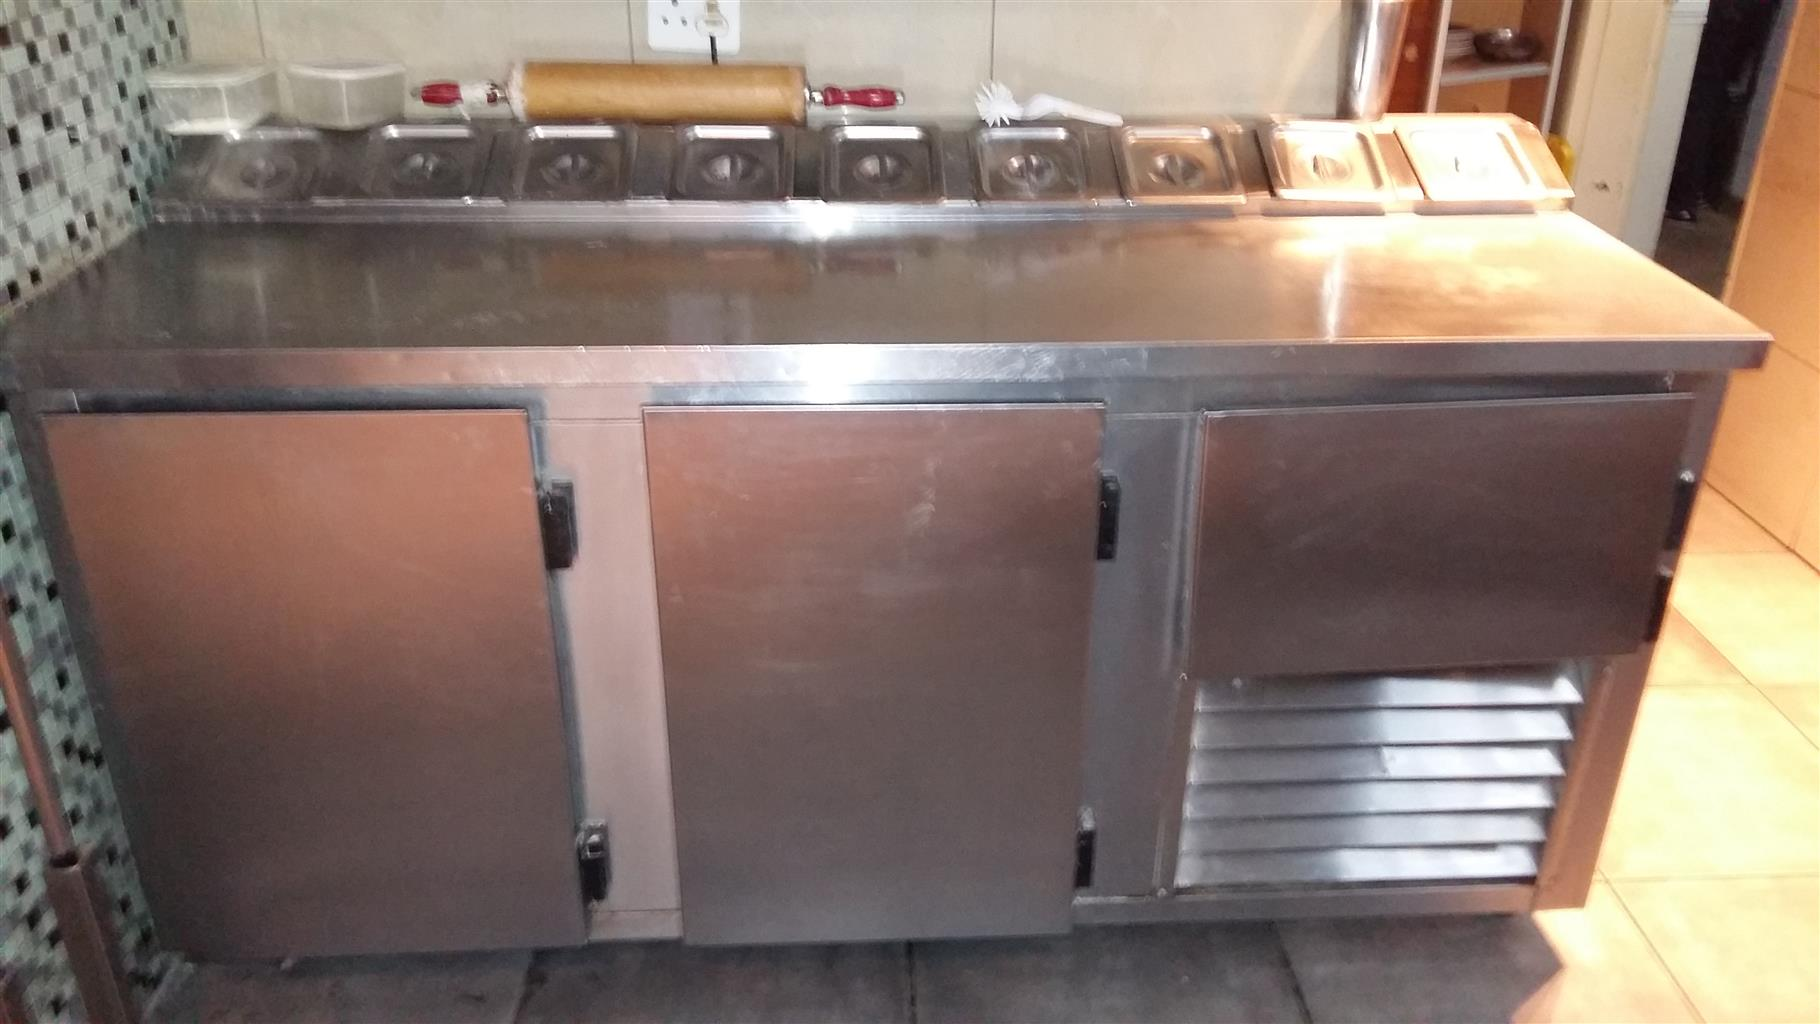 Best prices for your catering equipment